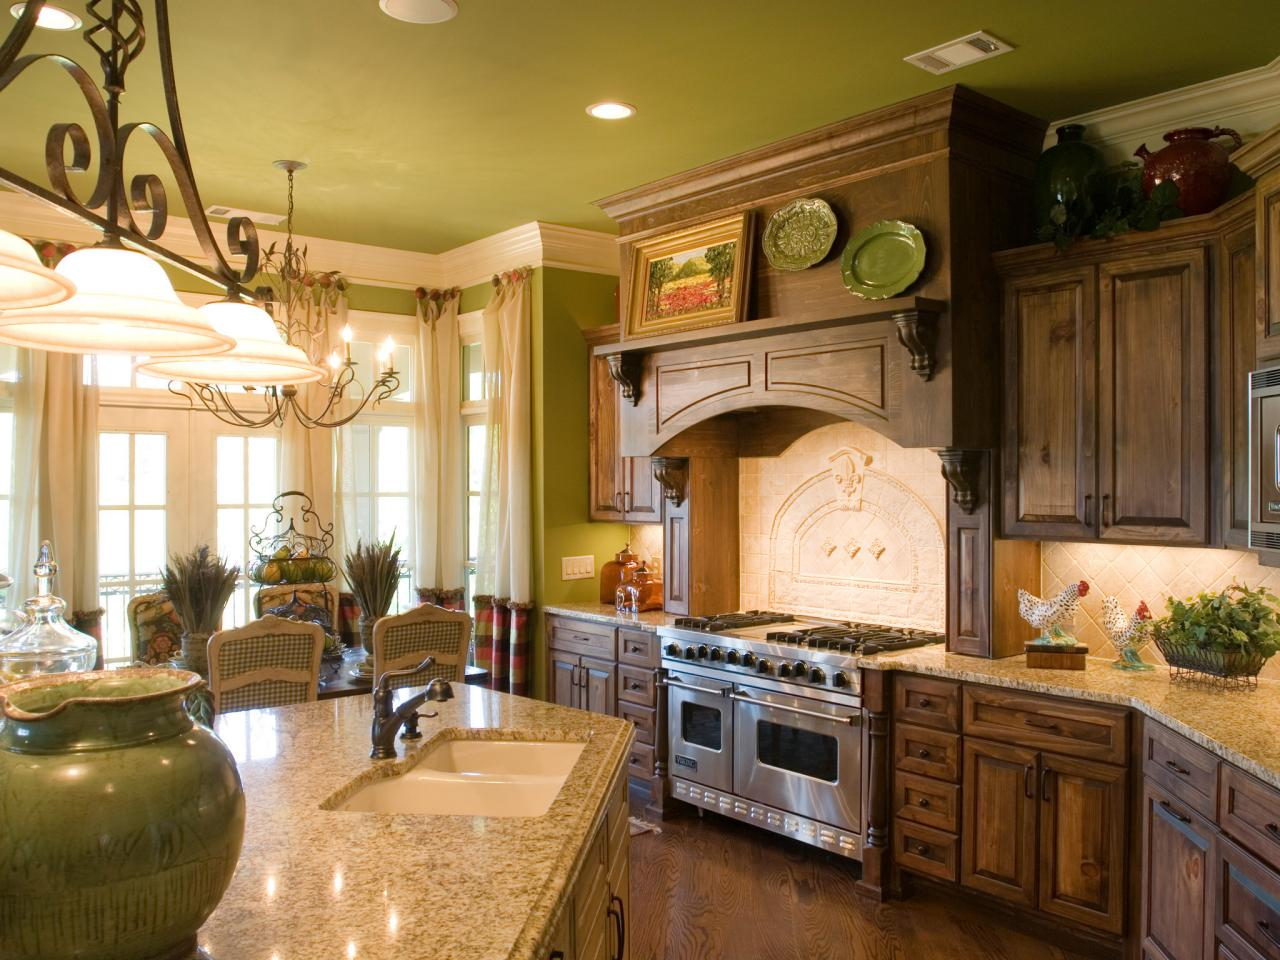 French Country Kitchen Cabinets Pictures Ideas From HGTV HGTV - Green kitchen accessories ideas